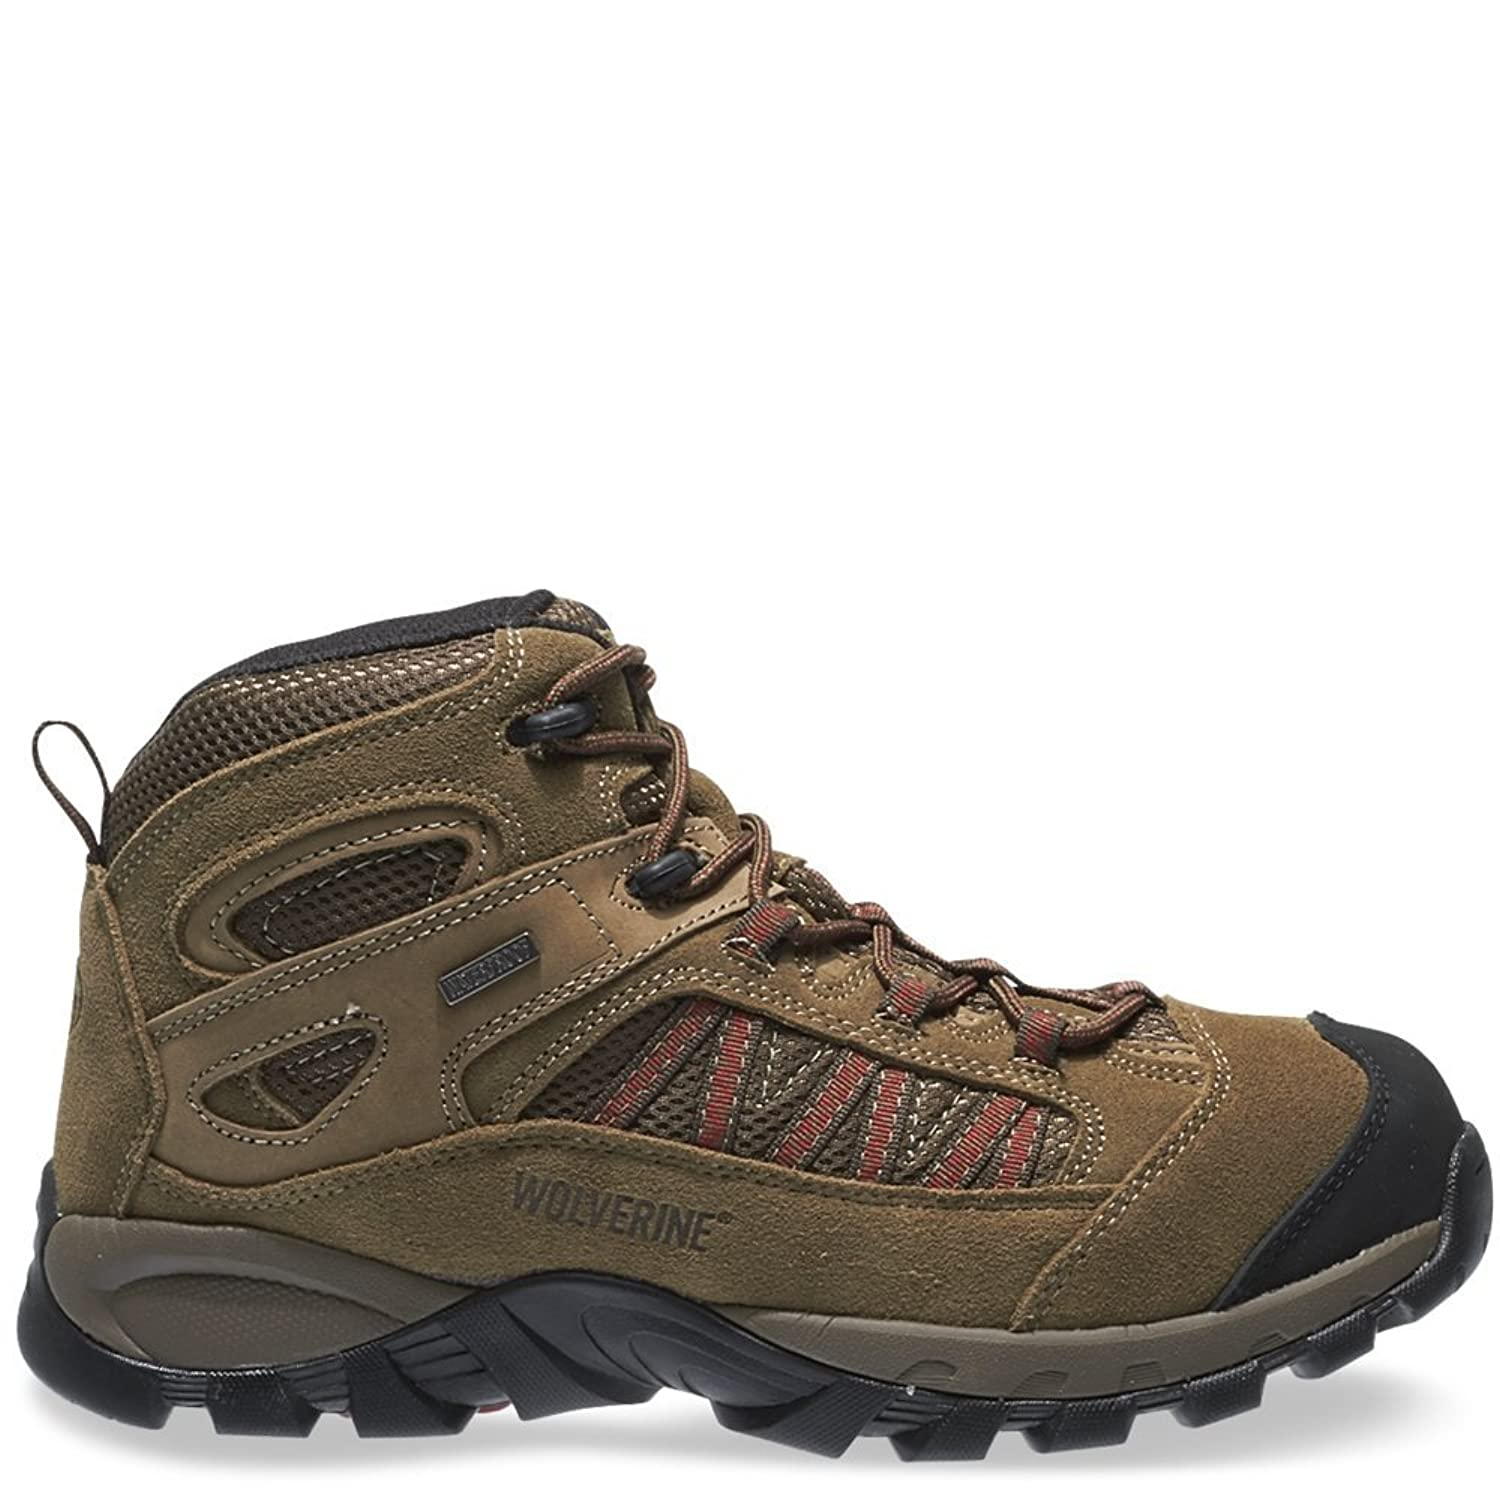 Black Ledge FX Waterproof Mid-Cut Steel-Toe Hiking Boot